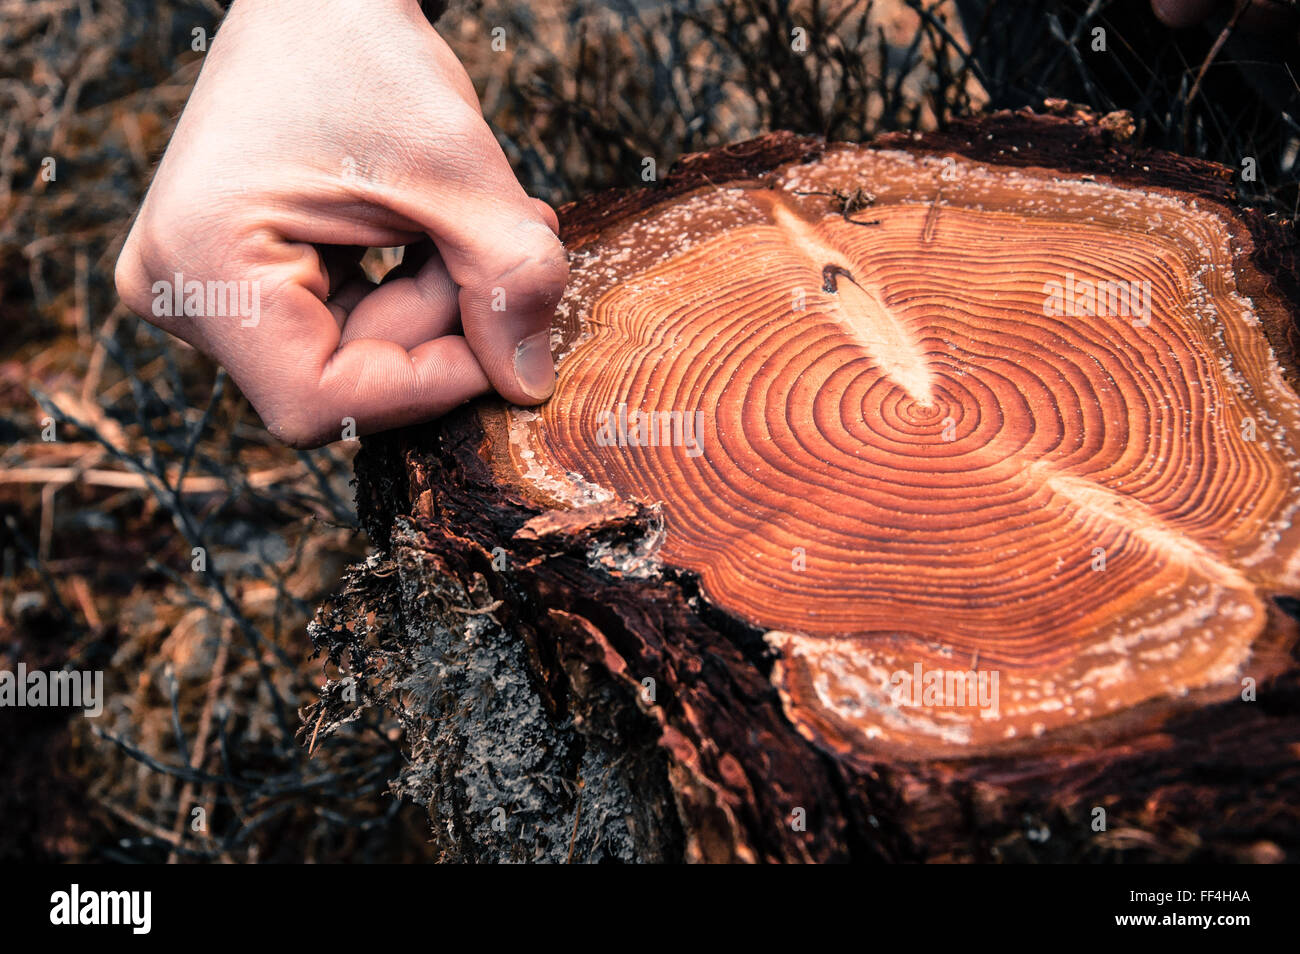 Hand counting tree rings on a cut log in a conifer forest - Stock Image